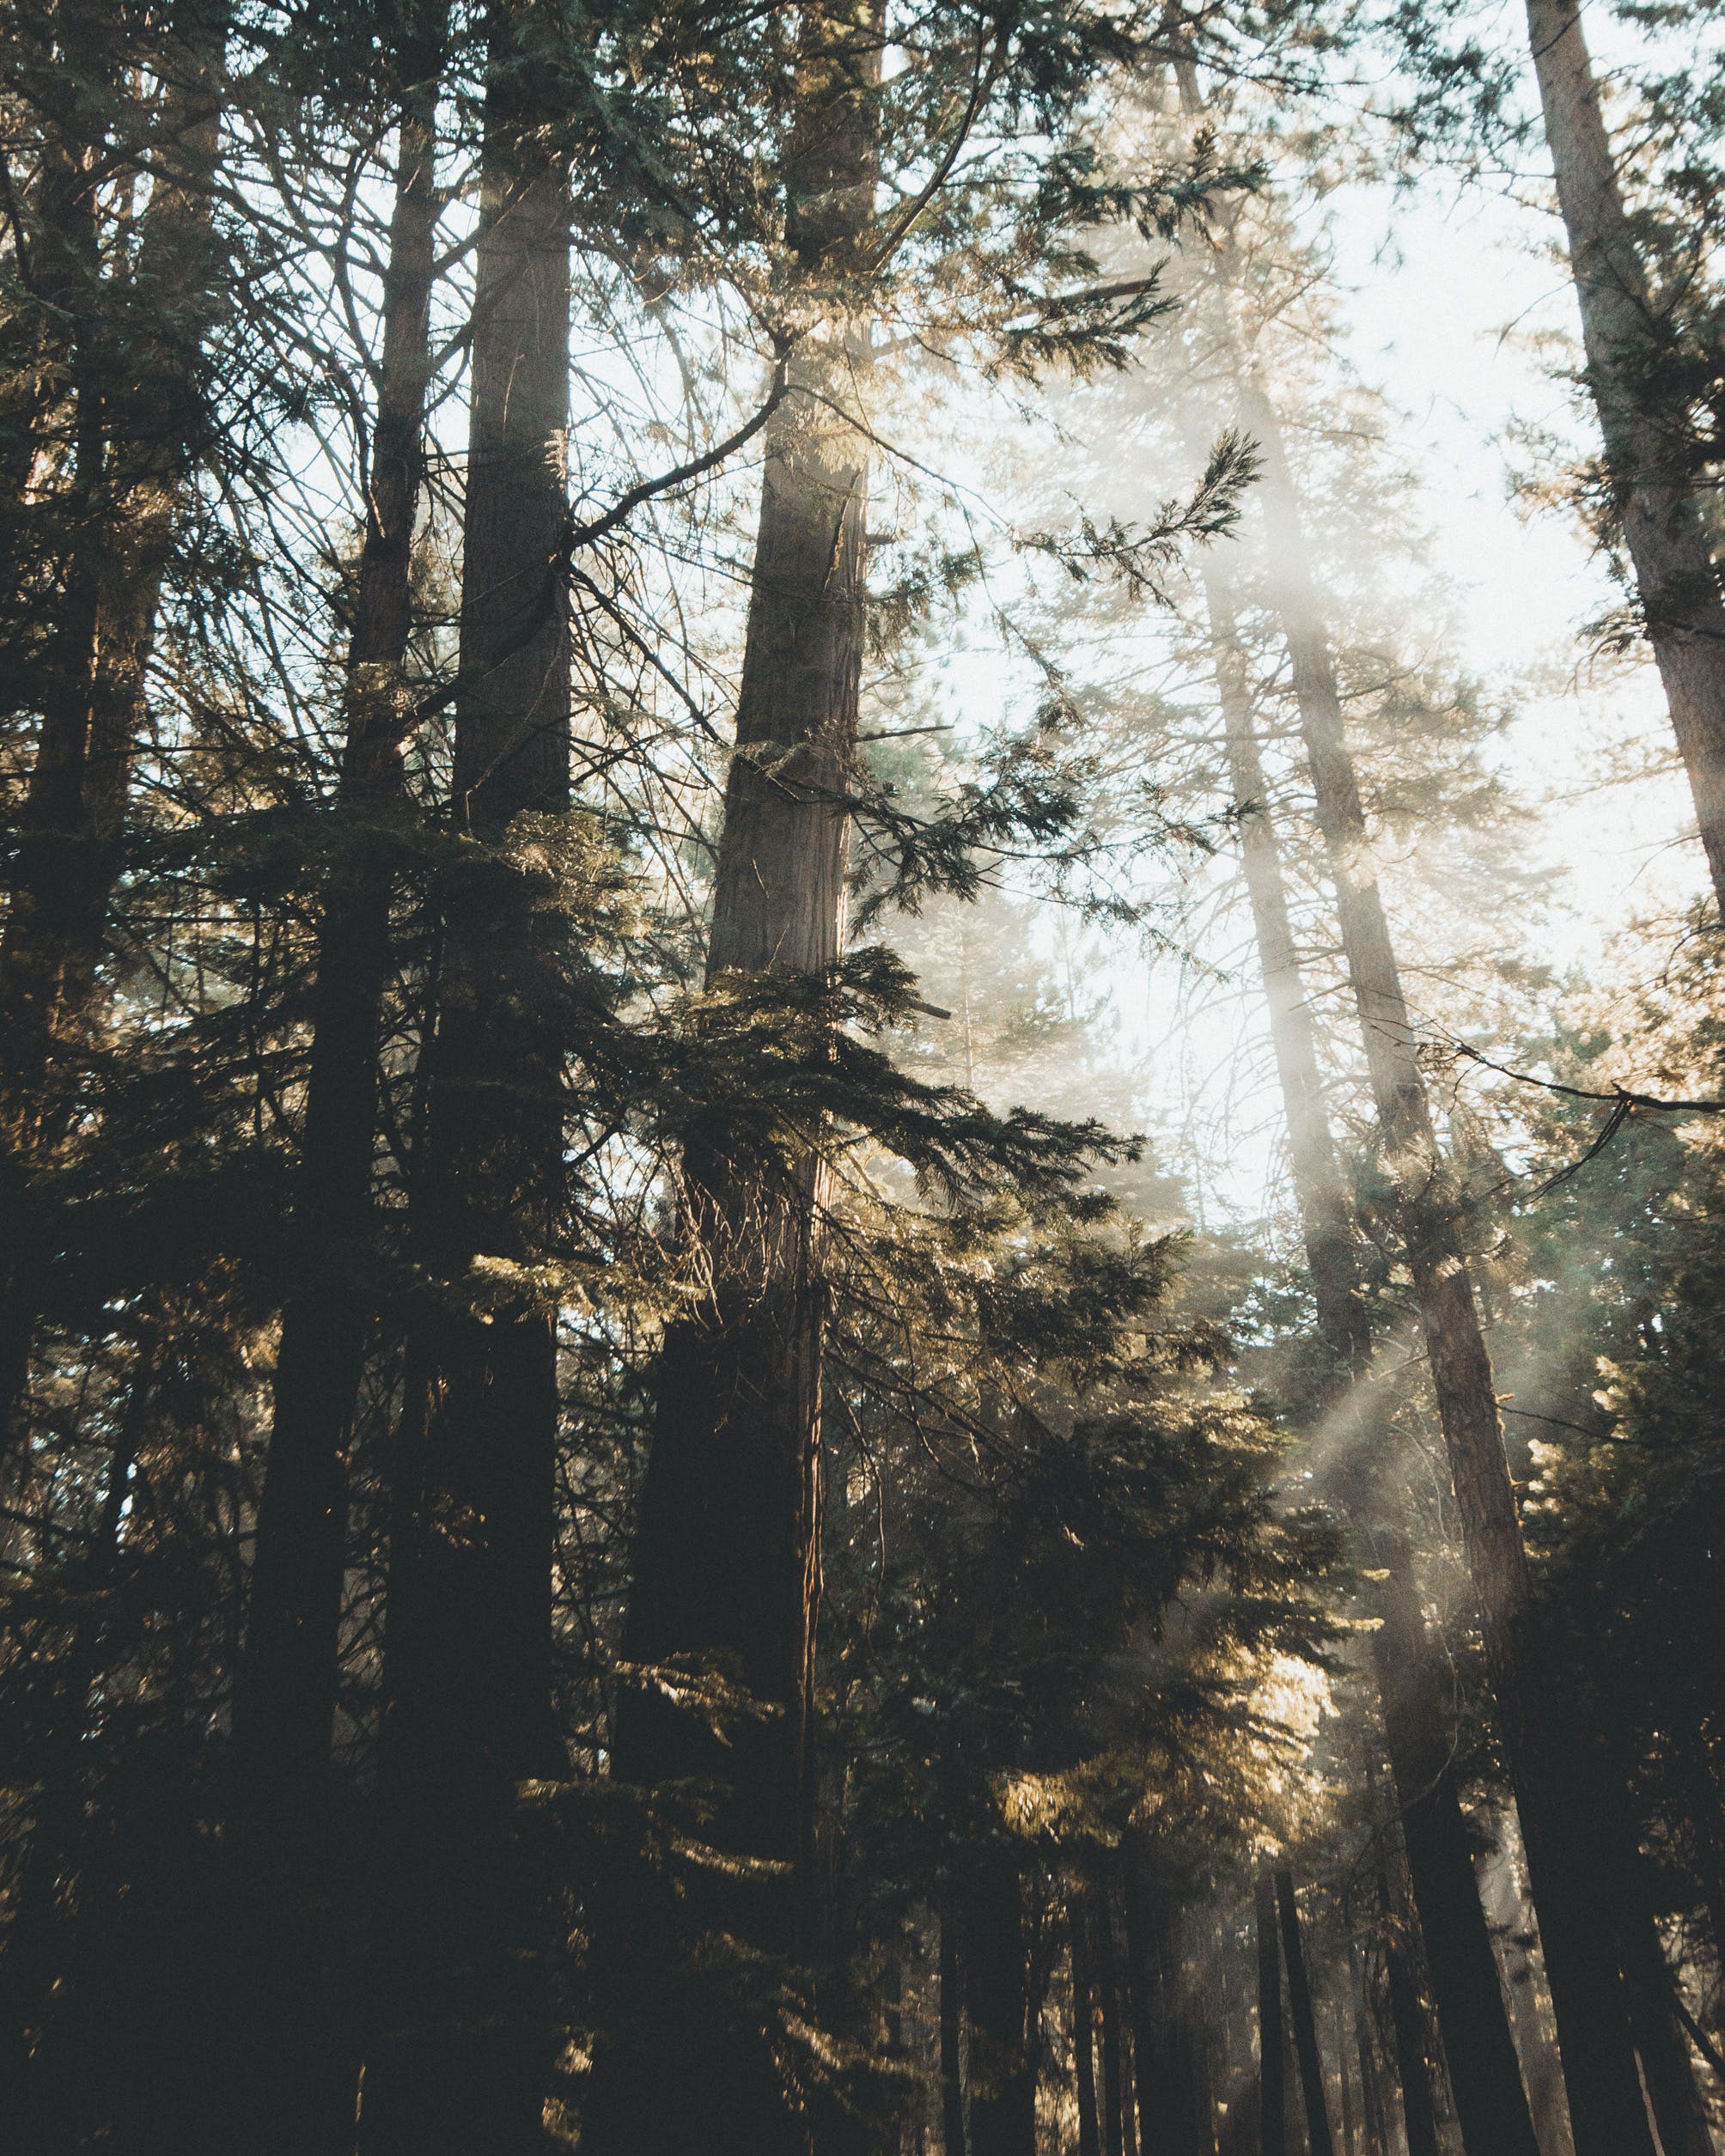 Free stock photo of nature, forest, trees, fog